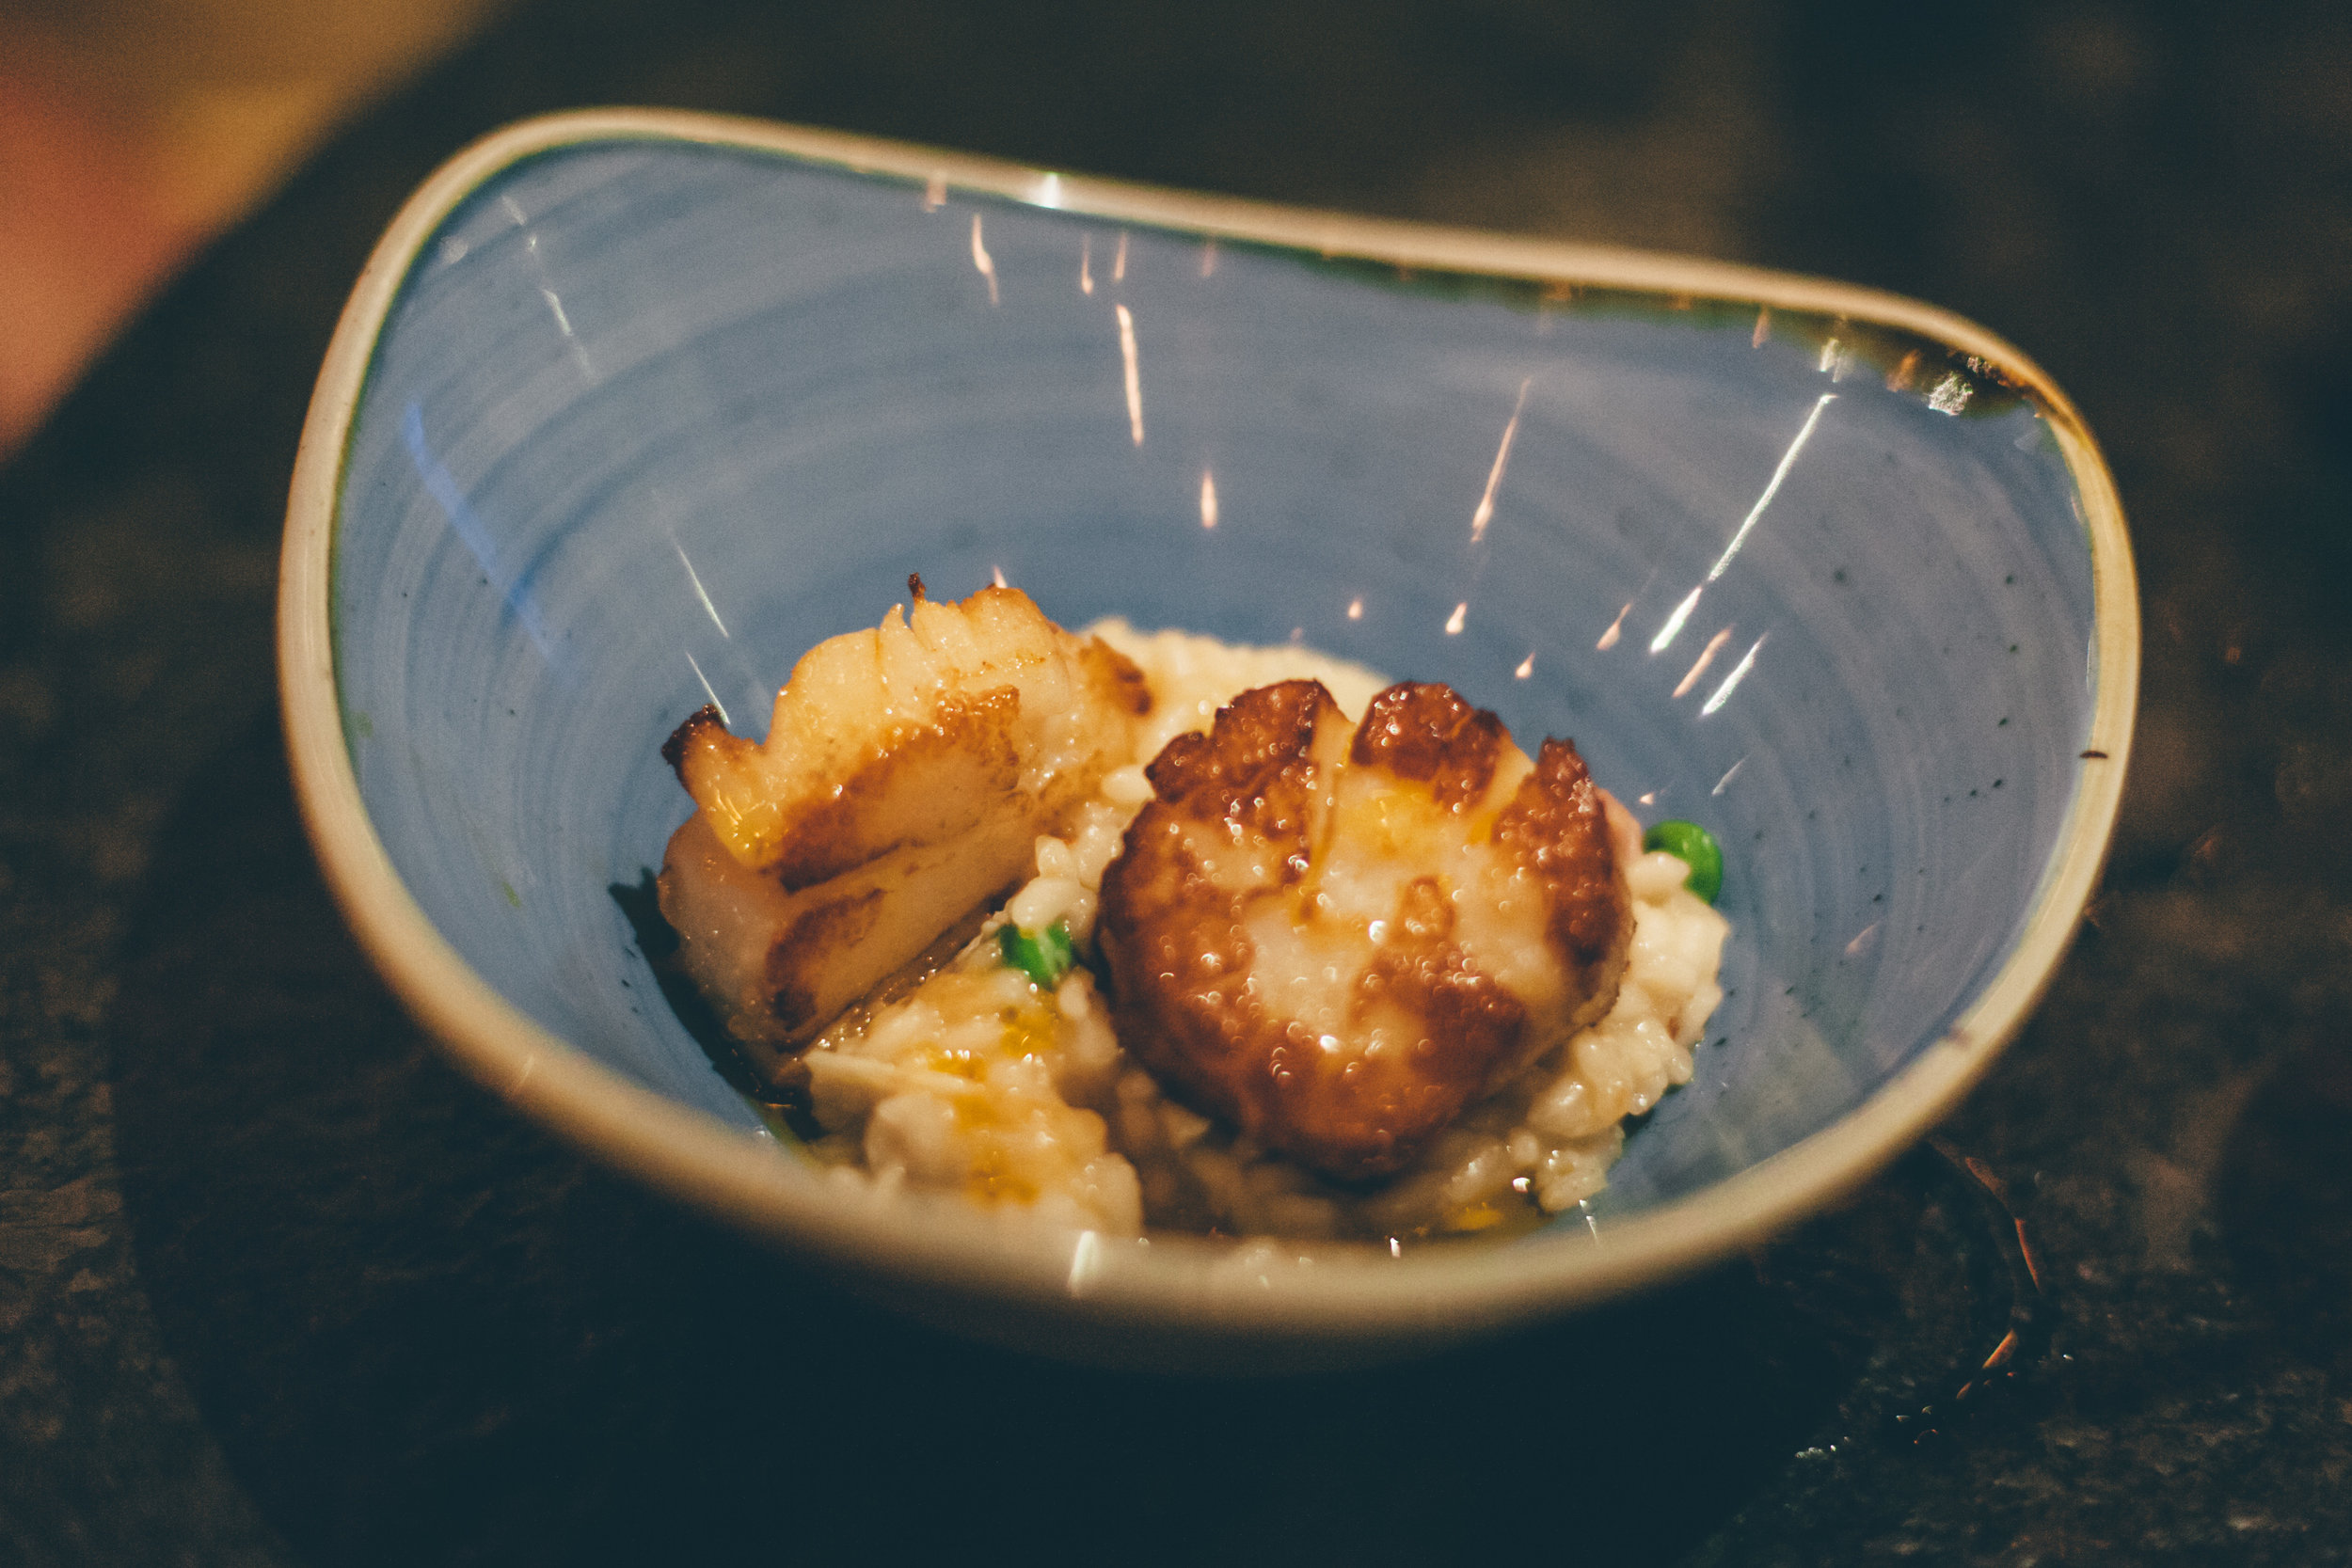 Entree Pan-Seared Diver Scallops:Sweet green pea, bacon and lump crab risotto, chile de arbol oil (Note: Picture is of a half-portion; the server split the entree for us prior to serving)